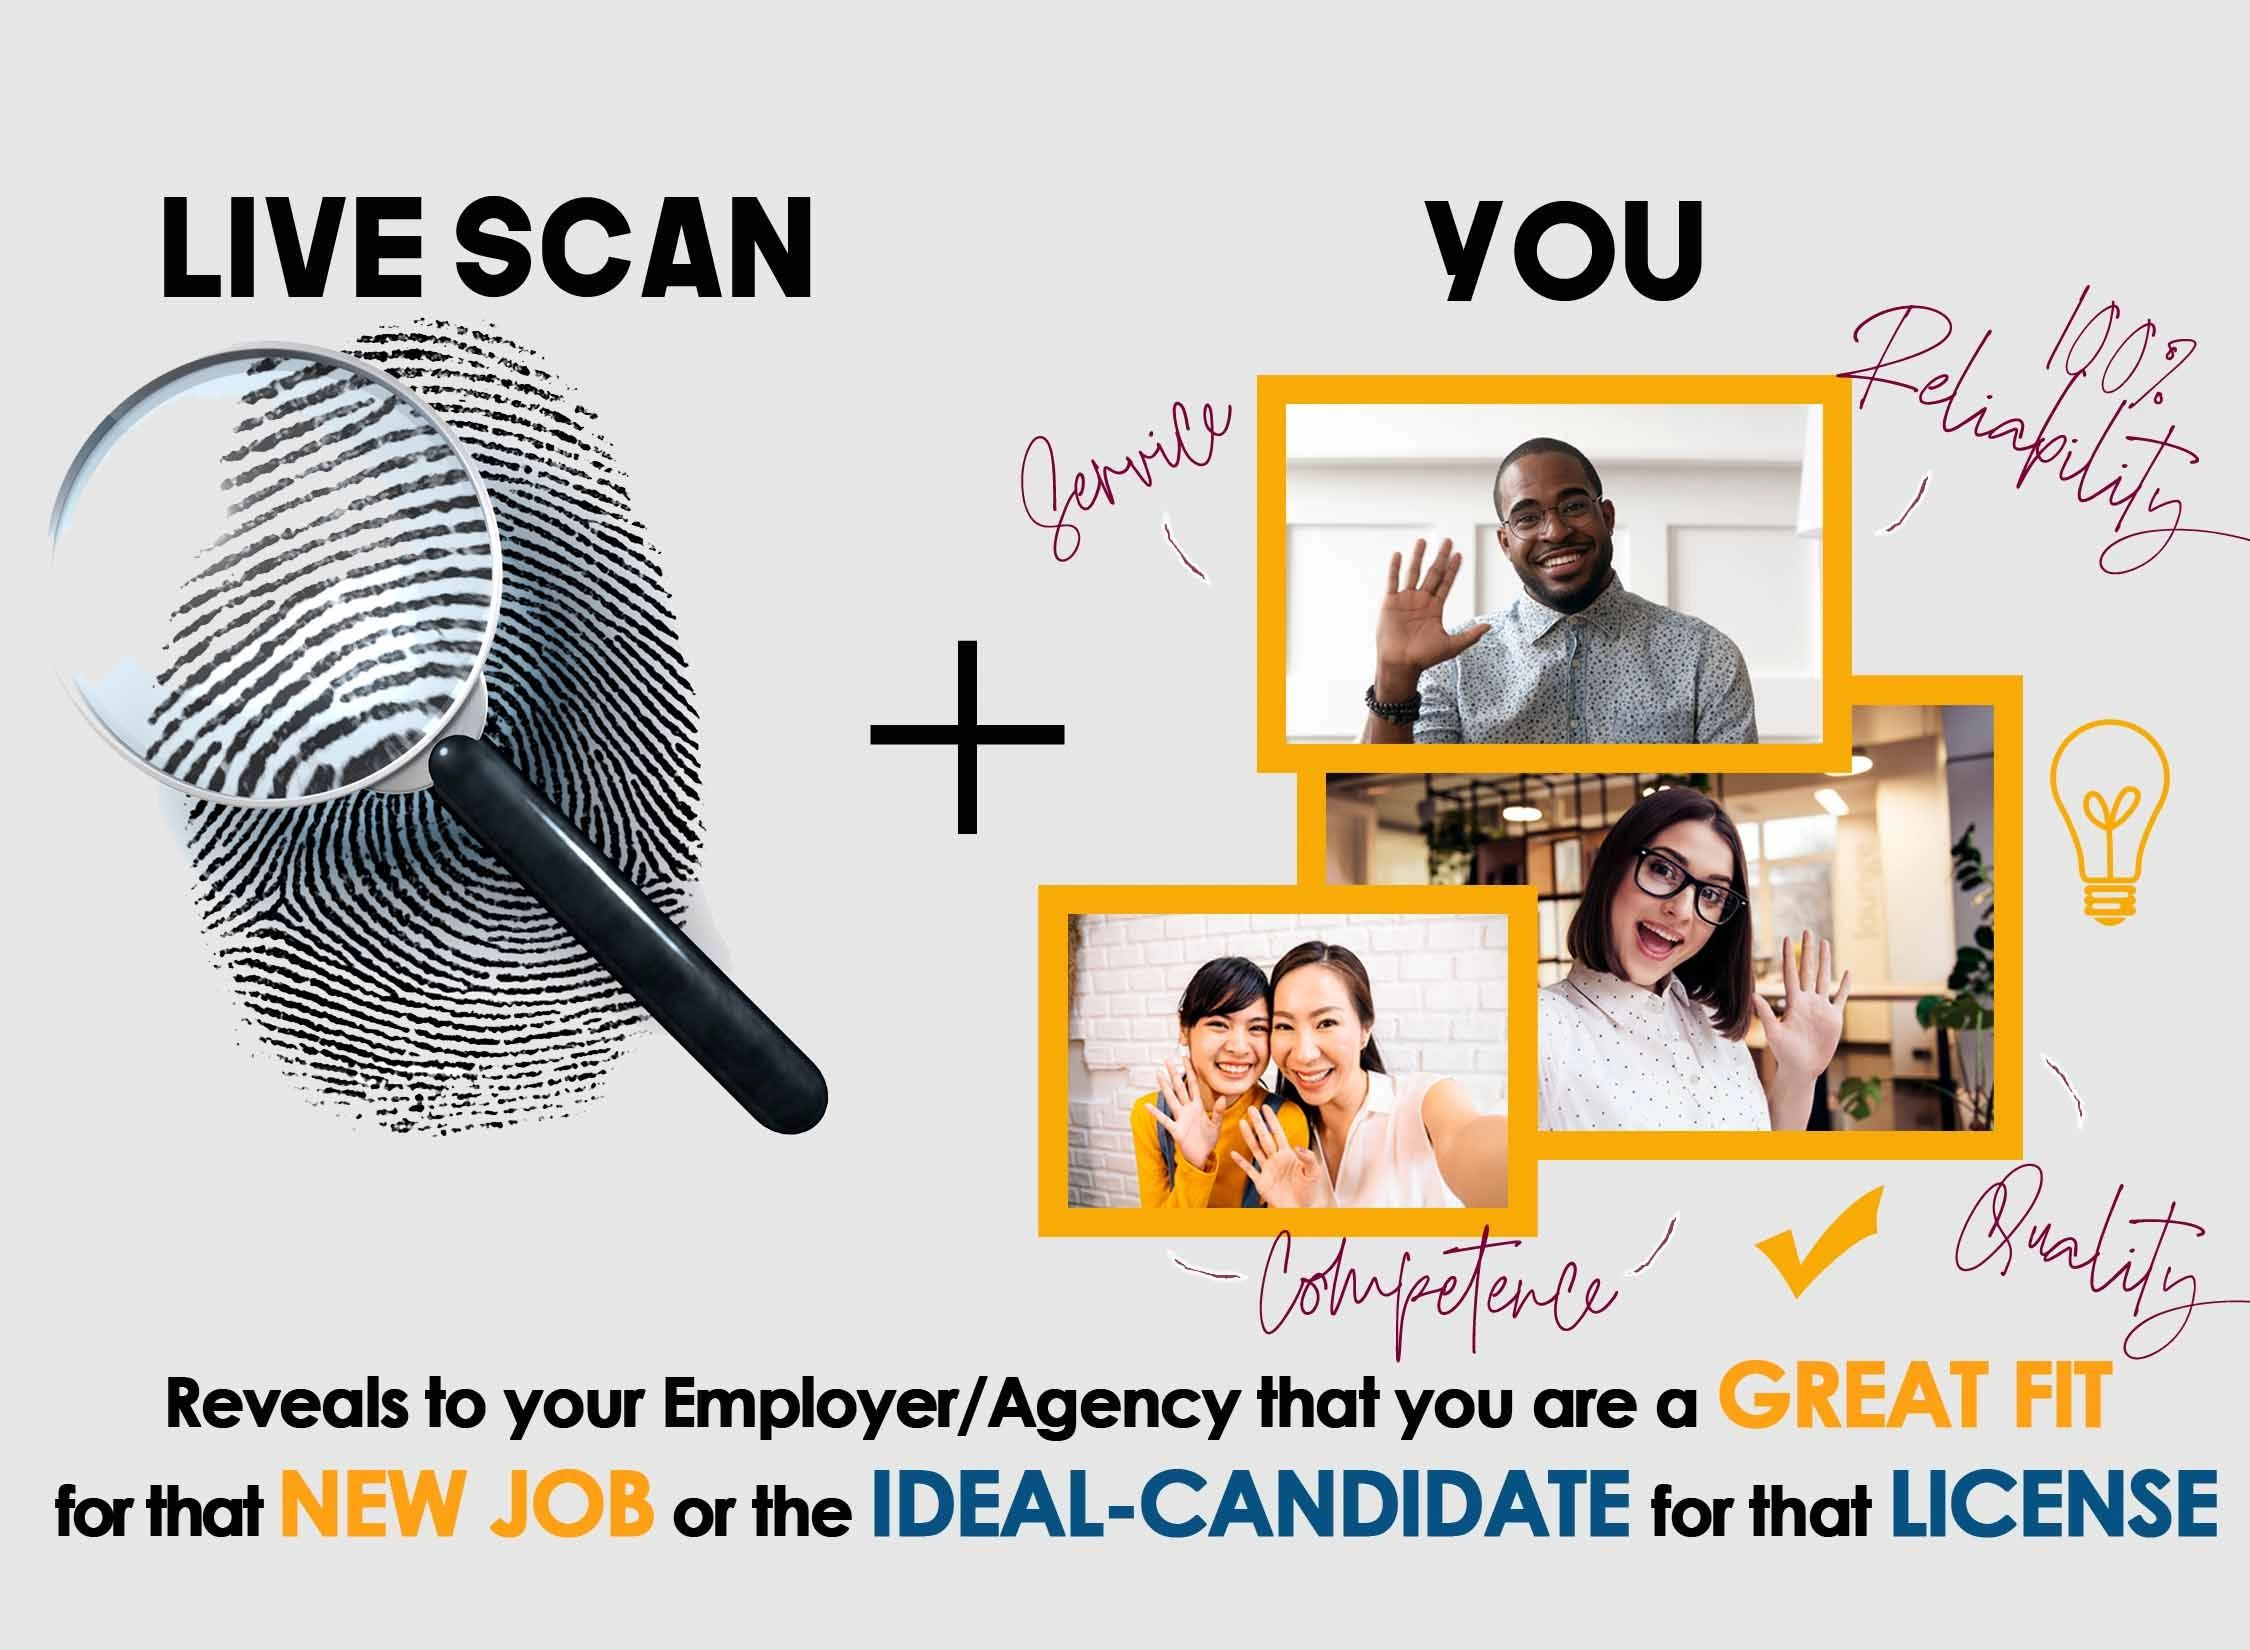 Live Scan Near Me Definitive Guide Inglewood Live Scan Ideal image claims they are number 1. inglewood live scan